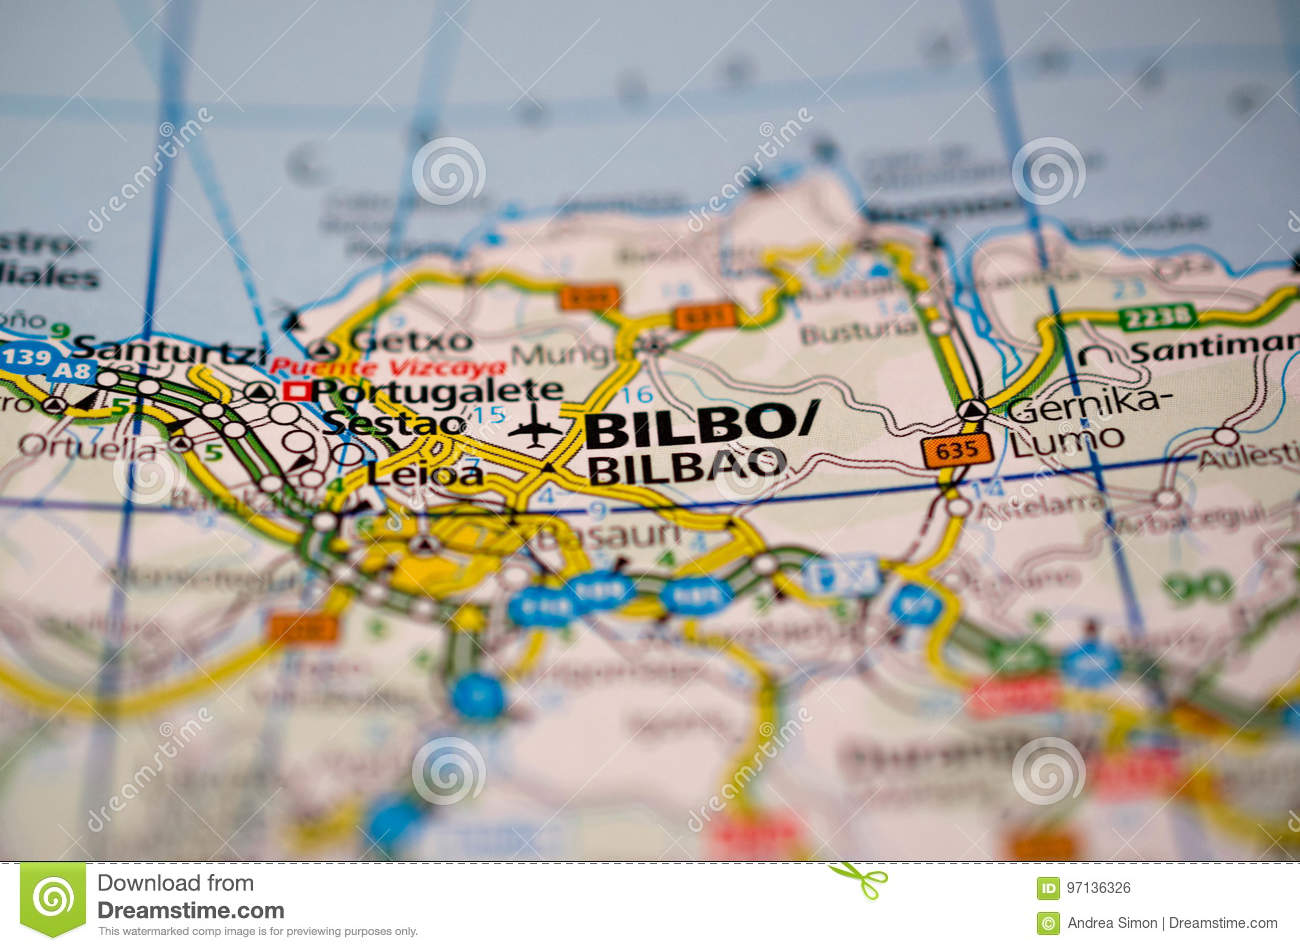 Bilbao On Map Stock Photo Image Of Street Transport 97136326